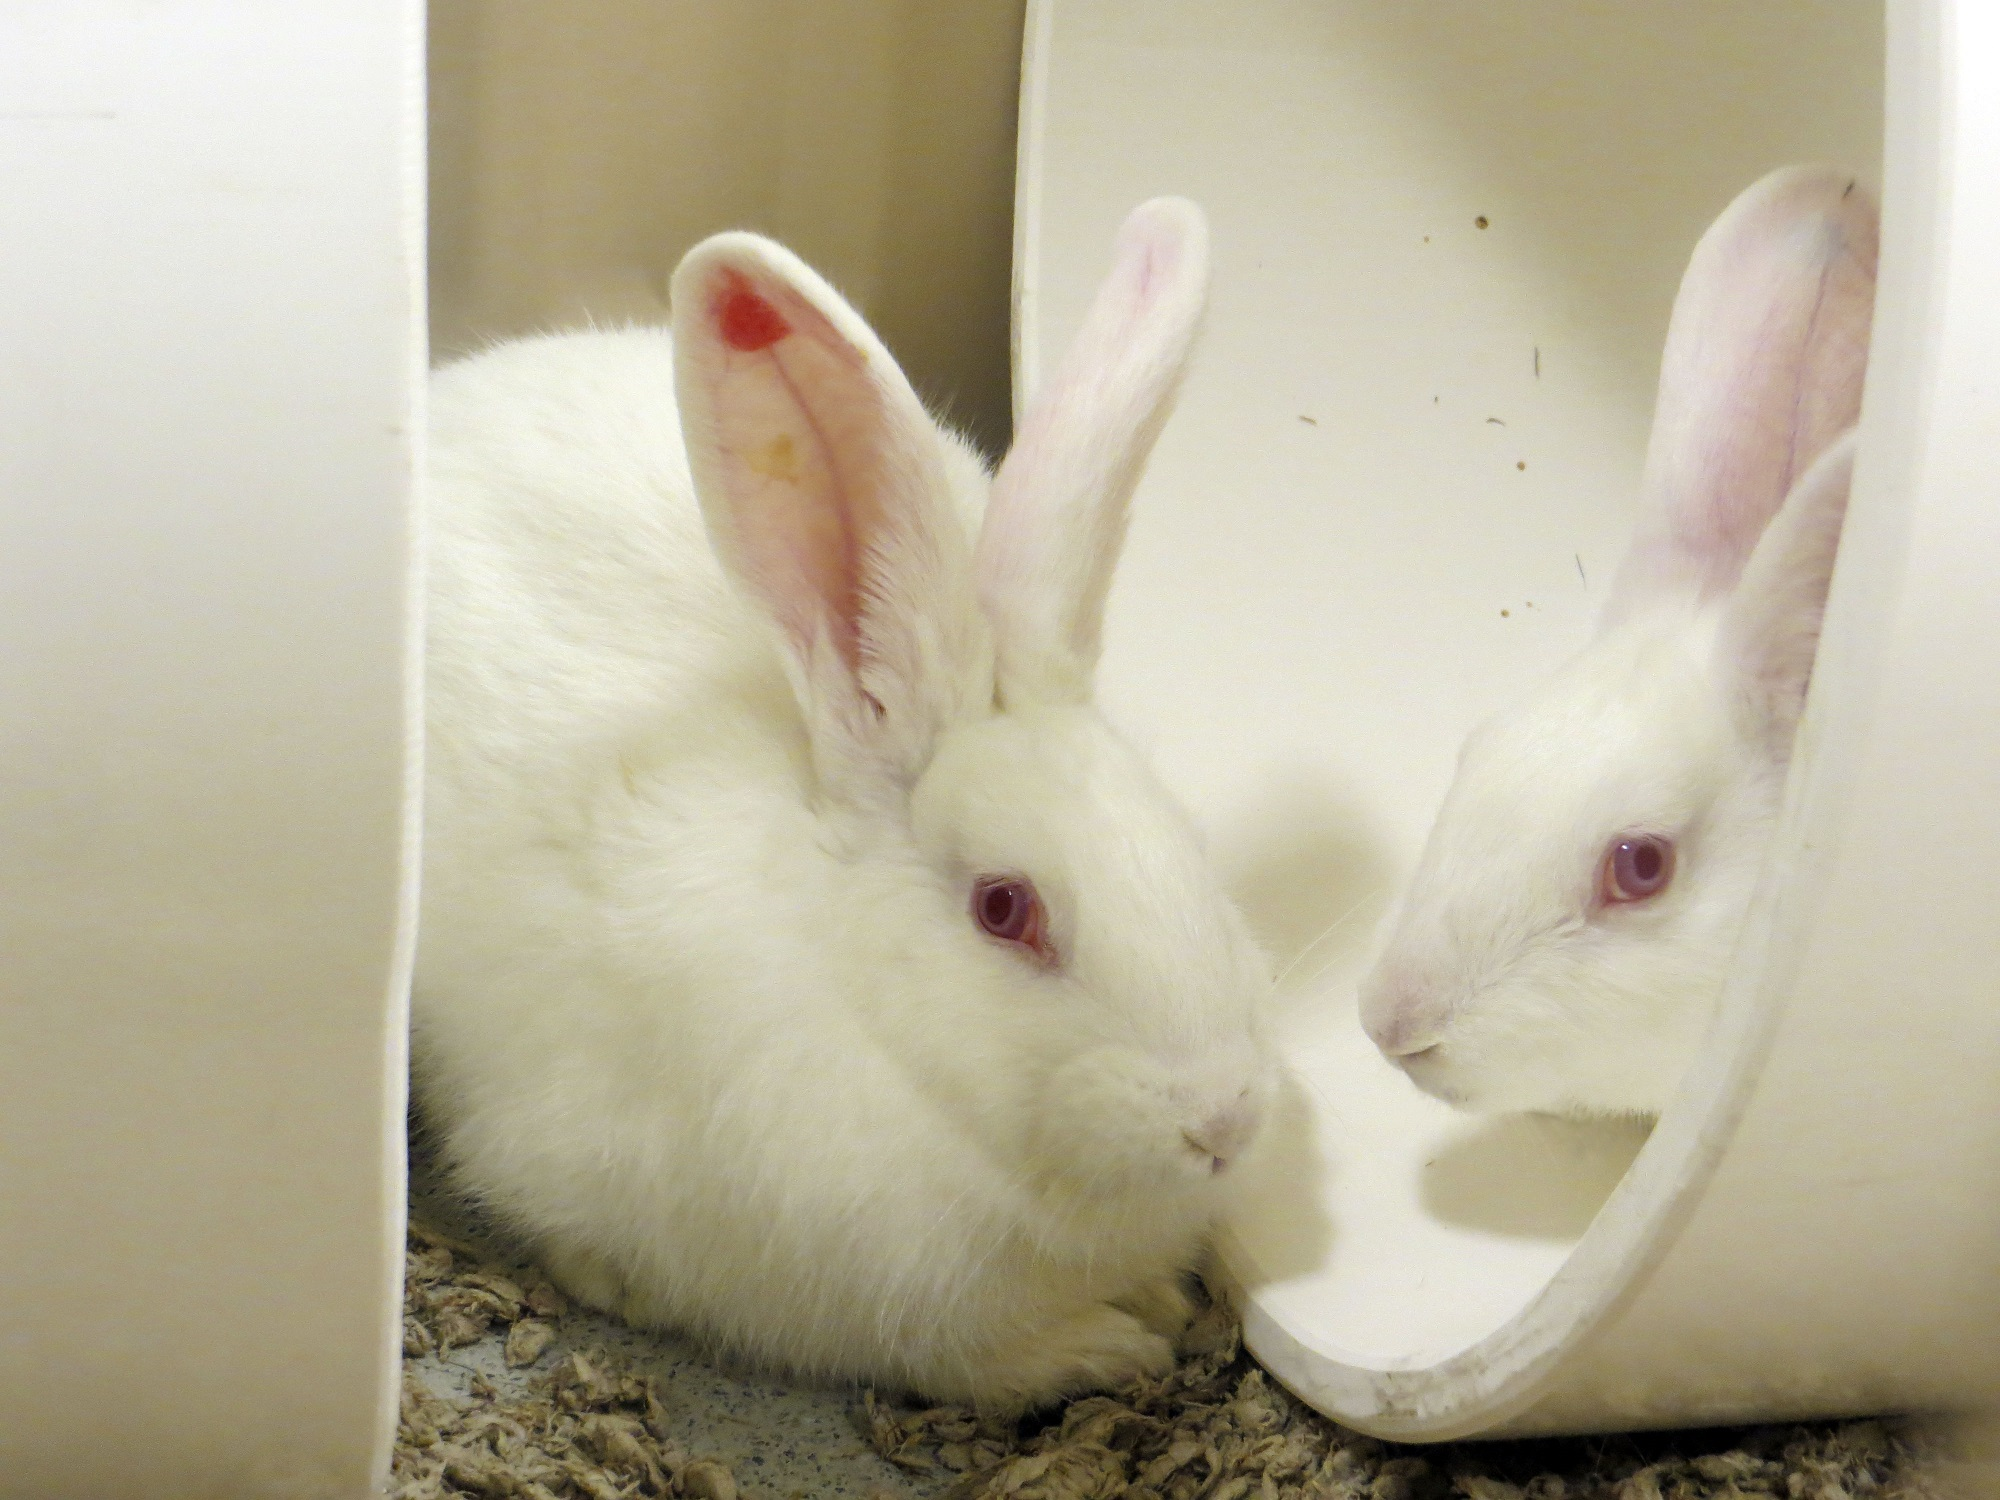 Socially Housed Rabbits In Tunnels Come See Our World